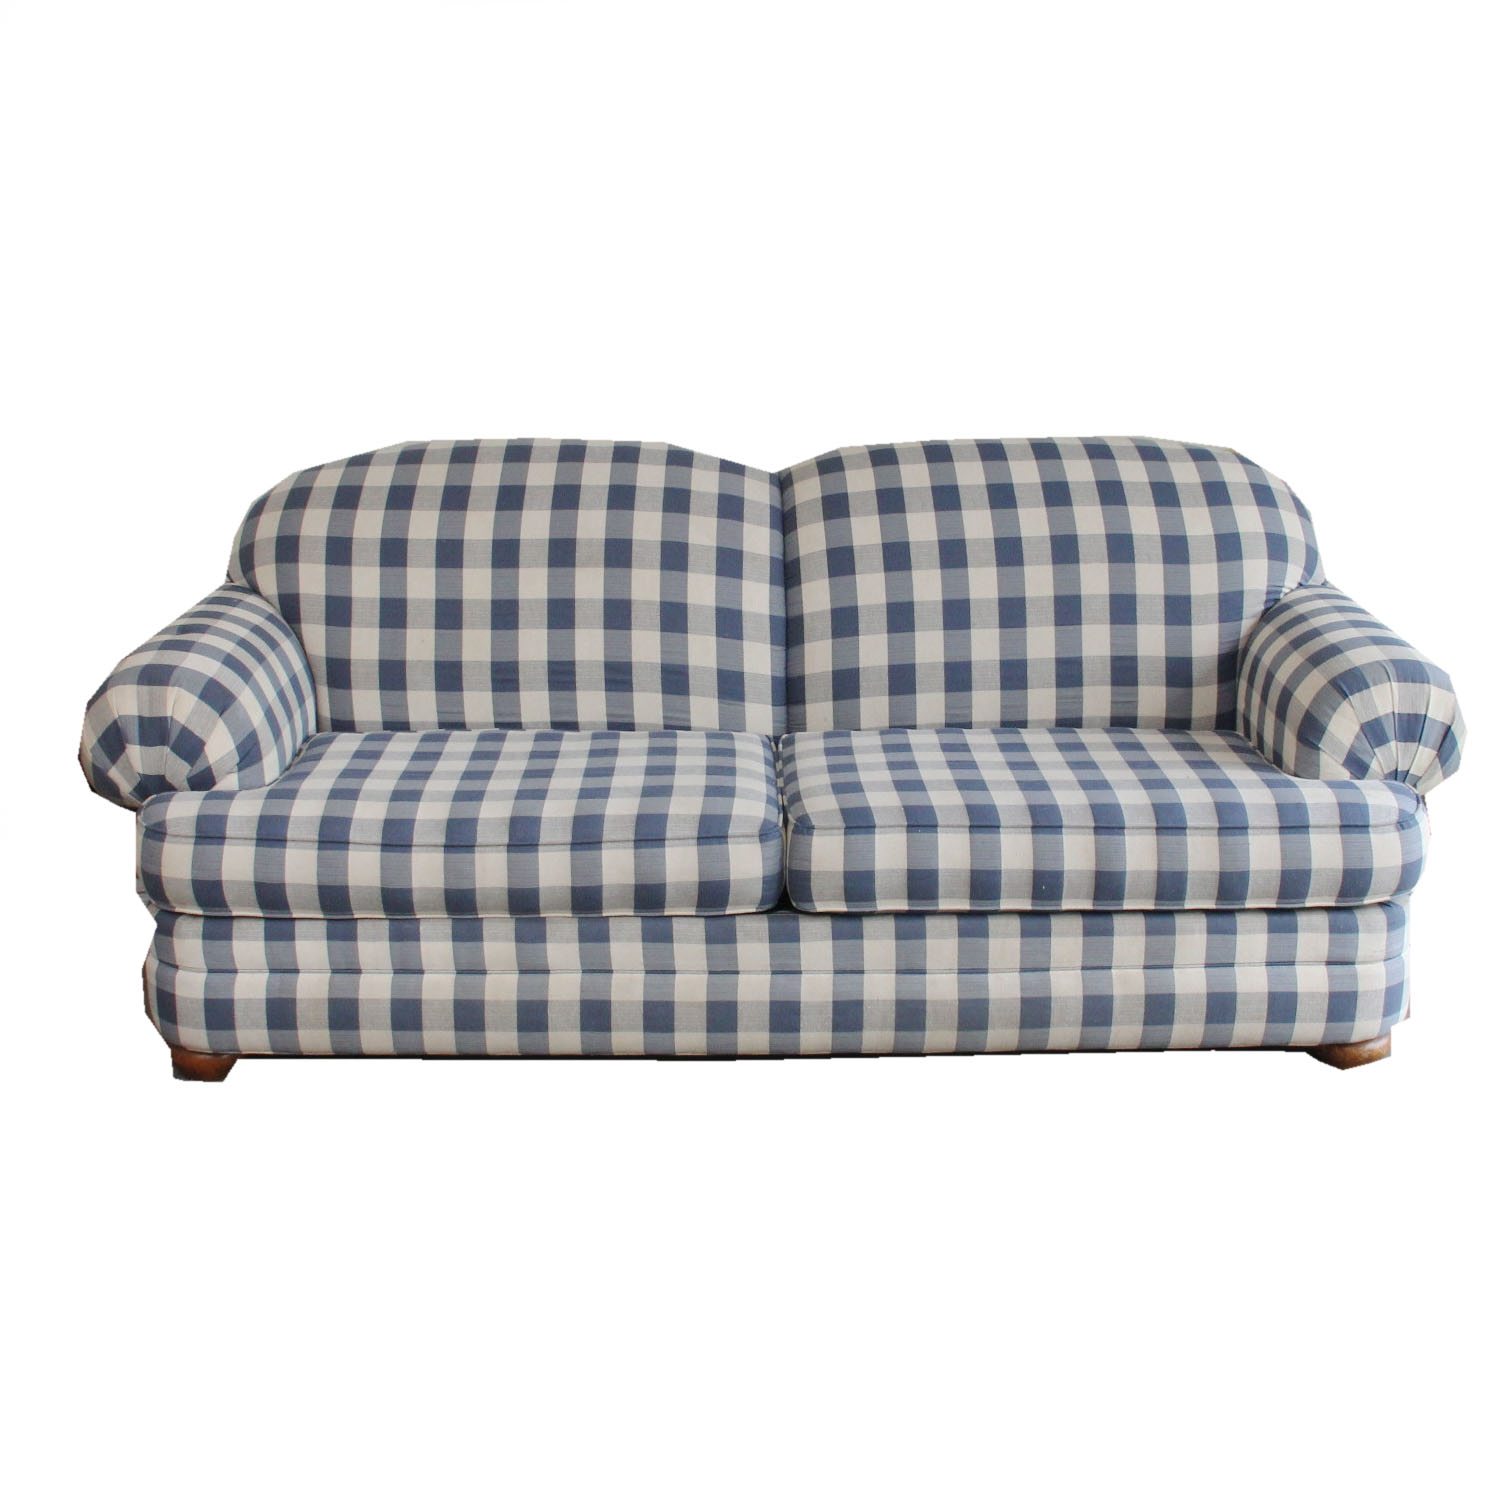 broyhill sleeper sofa fabric covers singapore blue and white plaid ebth